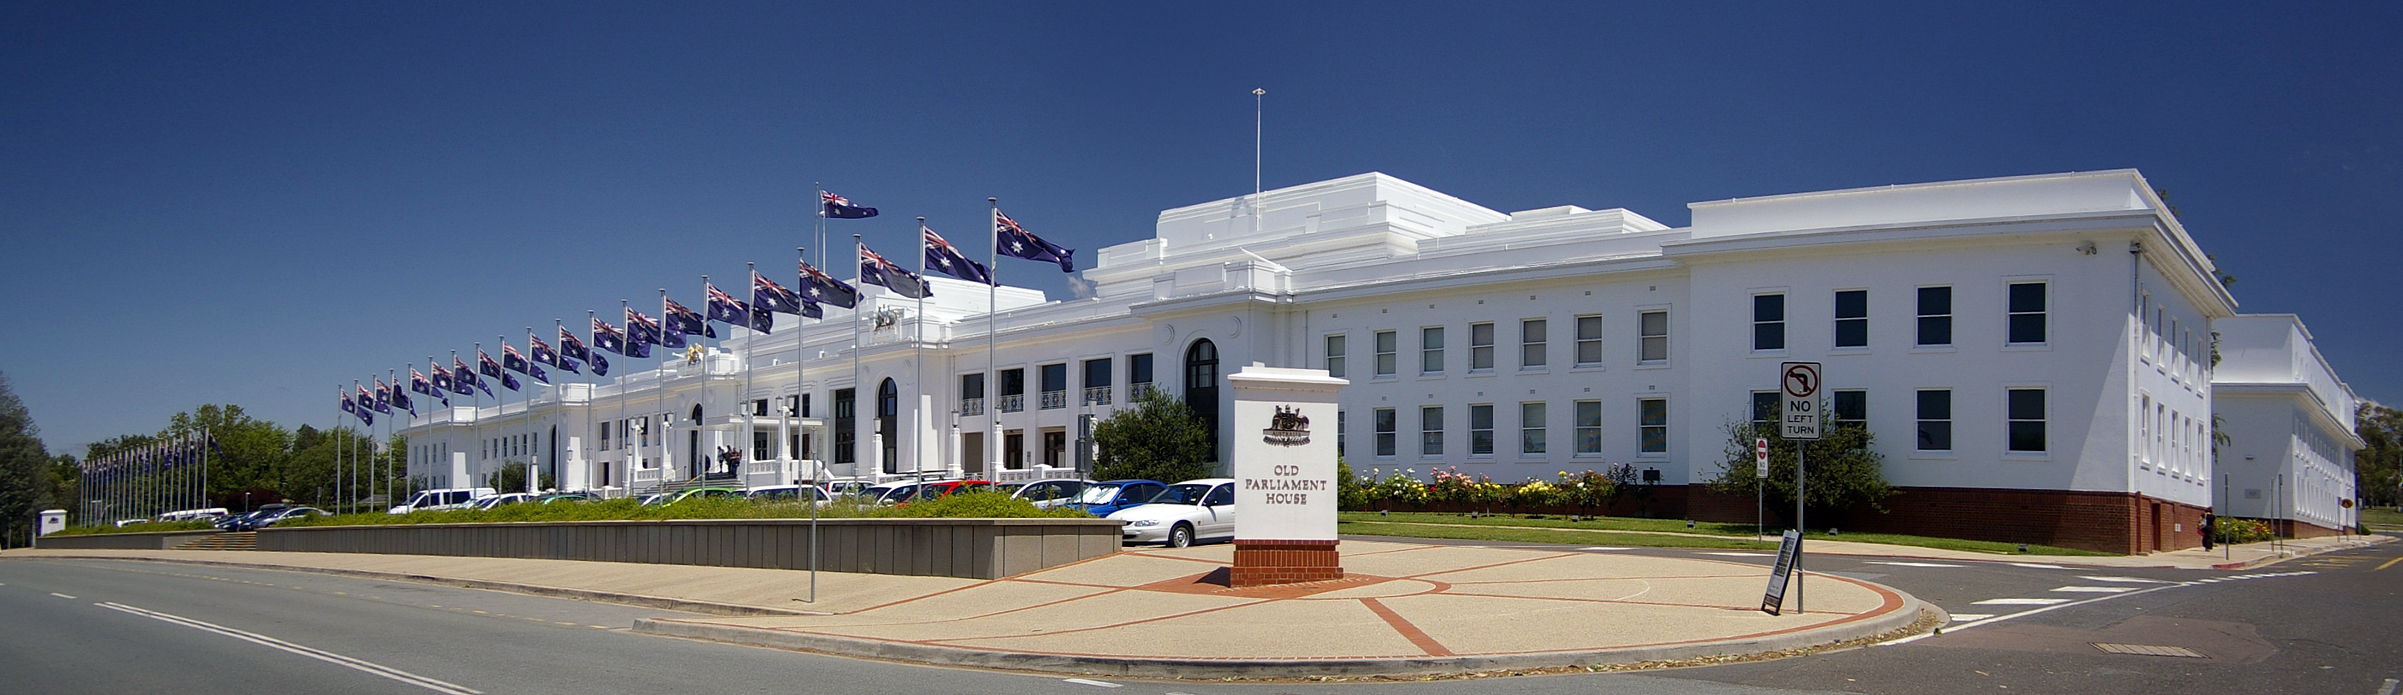 Old parliament house pictures